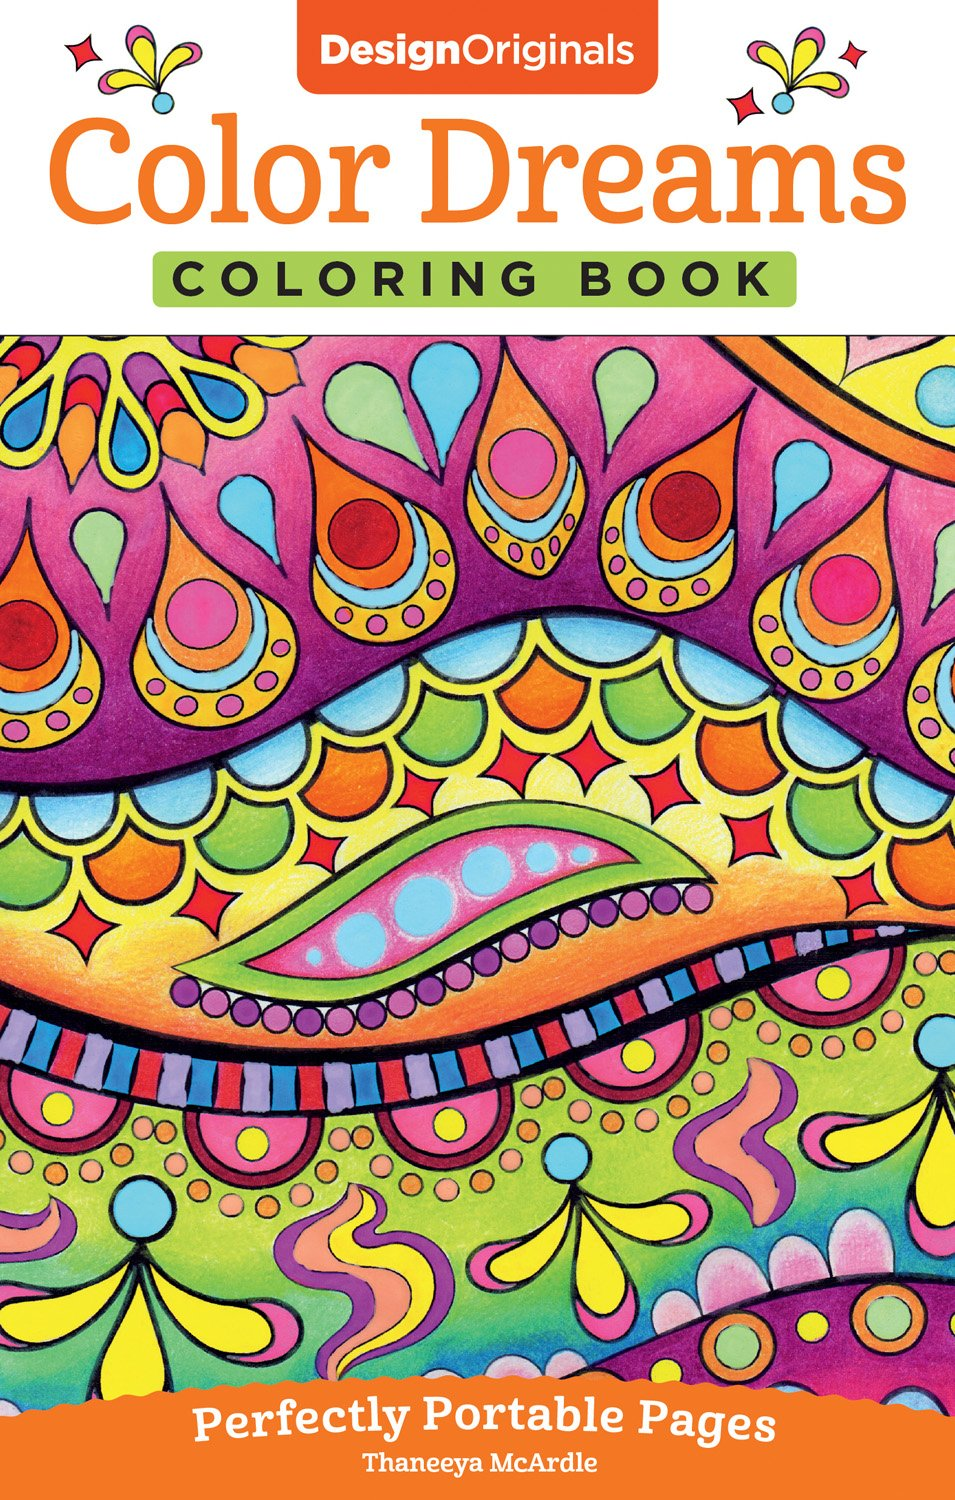 Art color book - Amazon Com Color Dreams Coloring Book Perfectly Portable Pages On The Go Coloring Book 9781497200364 Thaneeya Mcardle Books